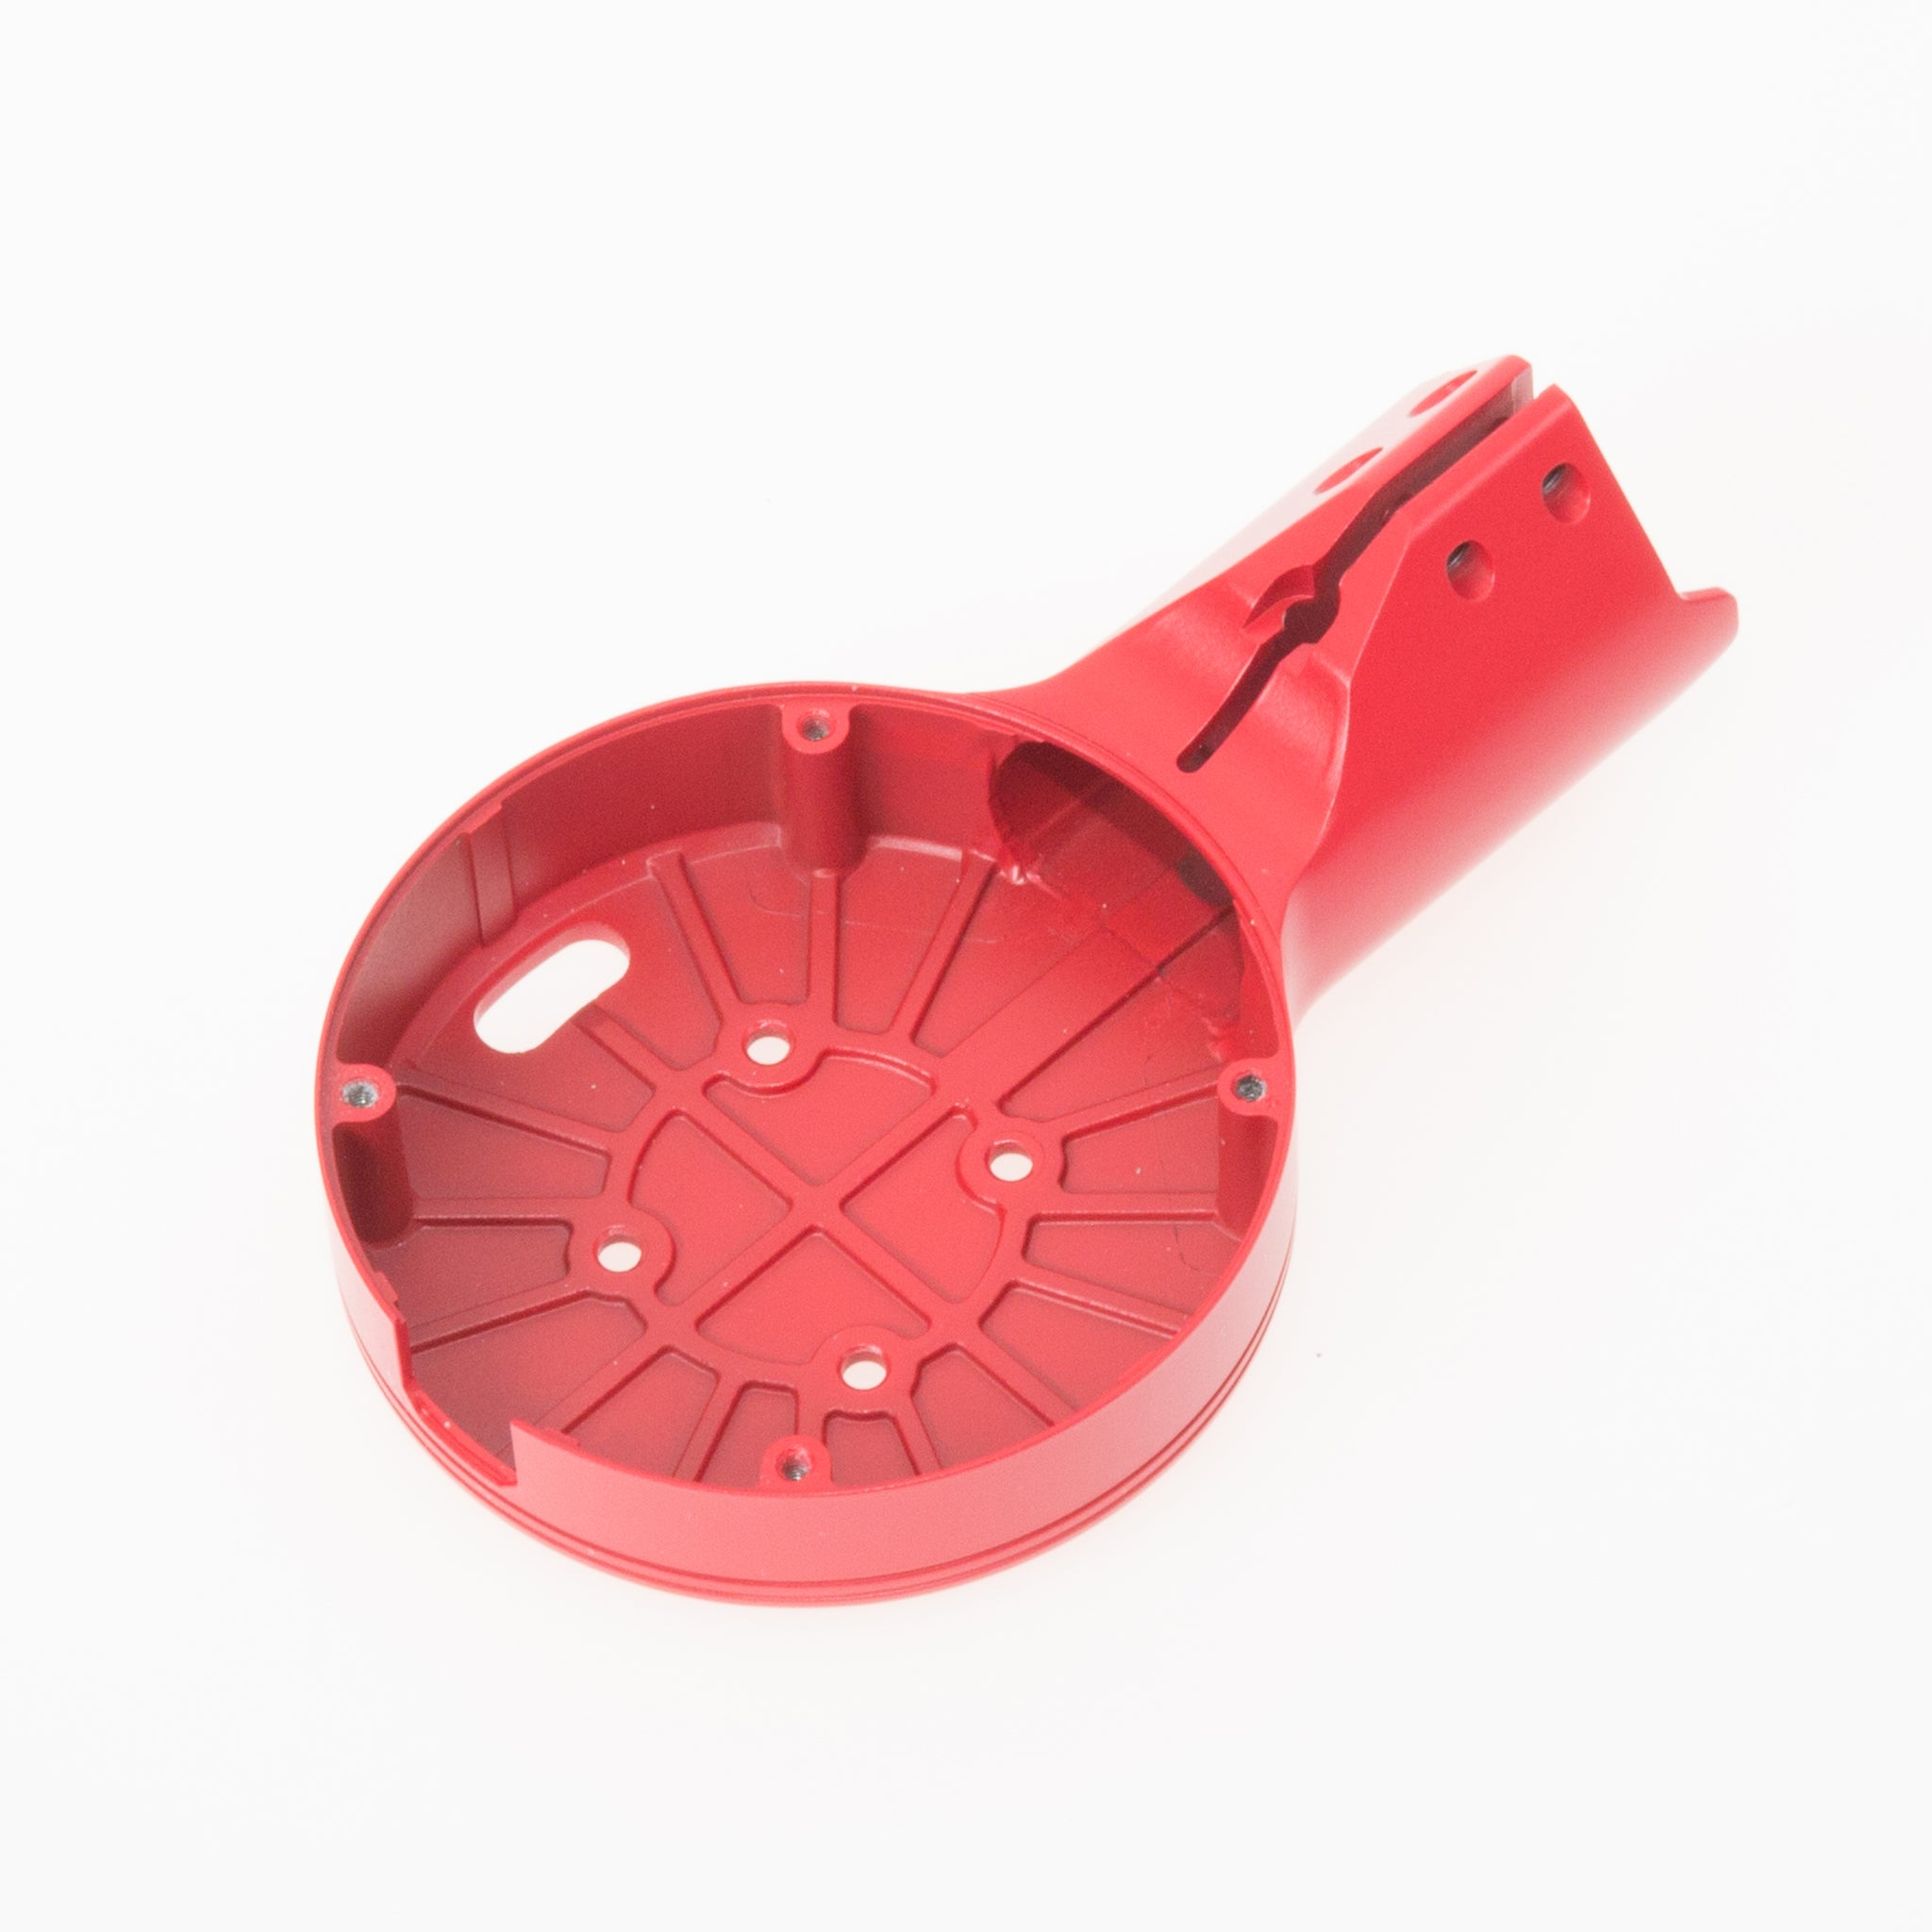 DJI Matrice 600 - 6010 Motor Base (Red)